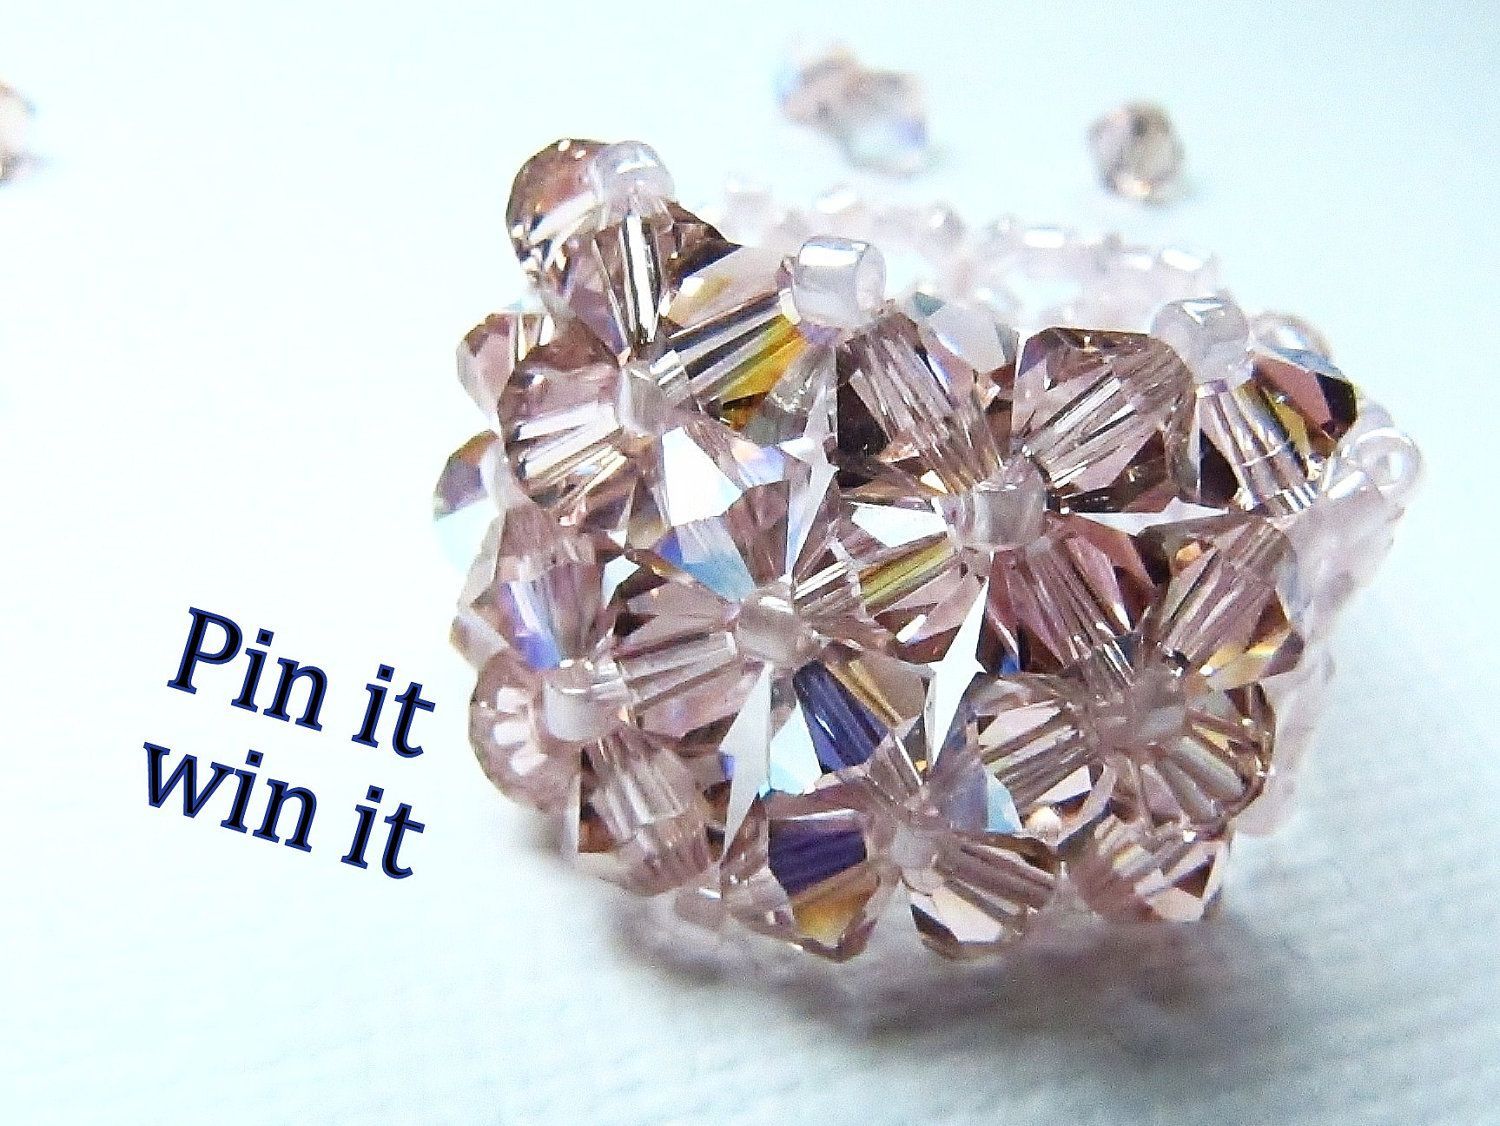 DeBella Pin it Win it!! DeBella Swarovski stretch ring REPIN DEADLINE: Sept 1 2012 10PM EDT FOR EVERY PERSON WHO REPINS OFF YOURS, COUNTS AS AN EXTRA ENTRY FOR YOU! www.etsy.com/shop/cissdena